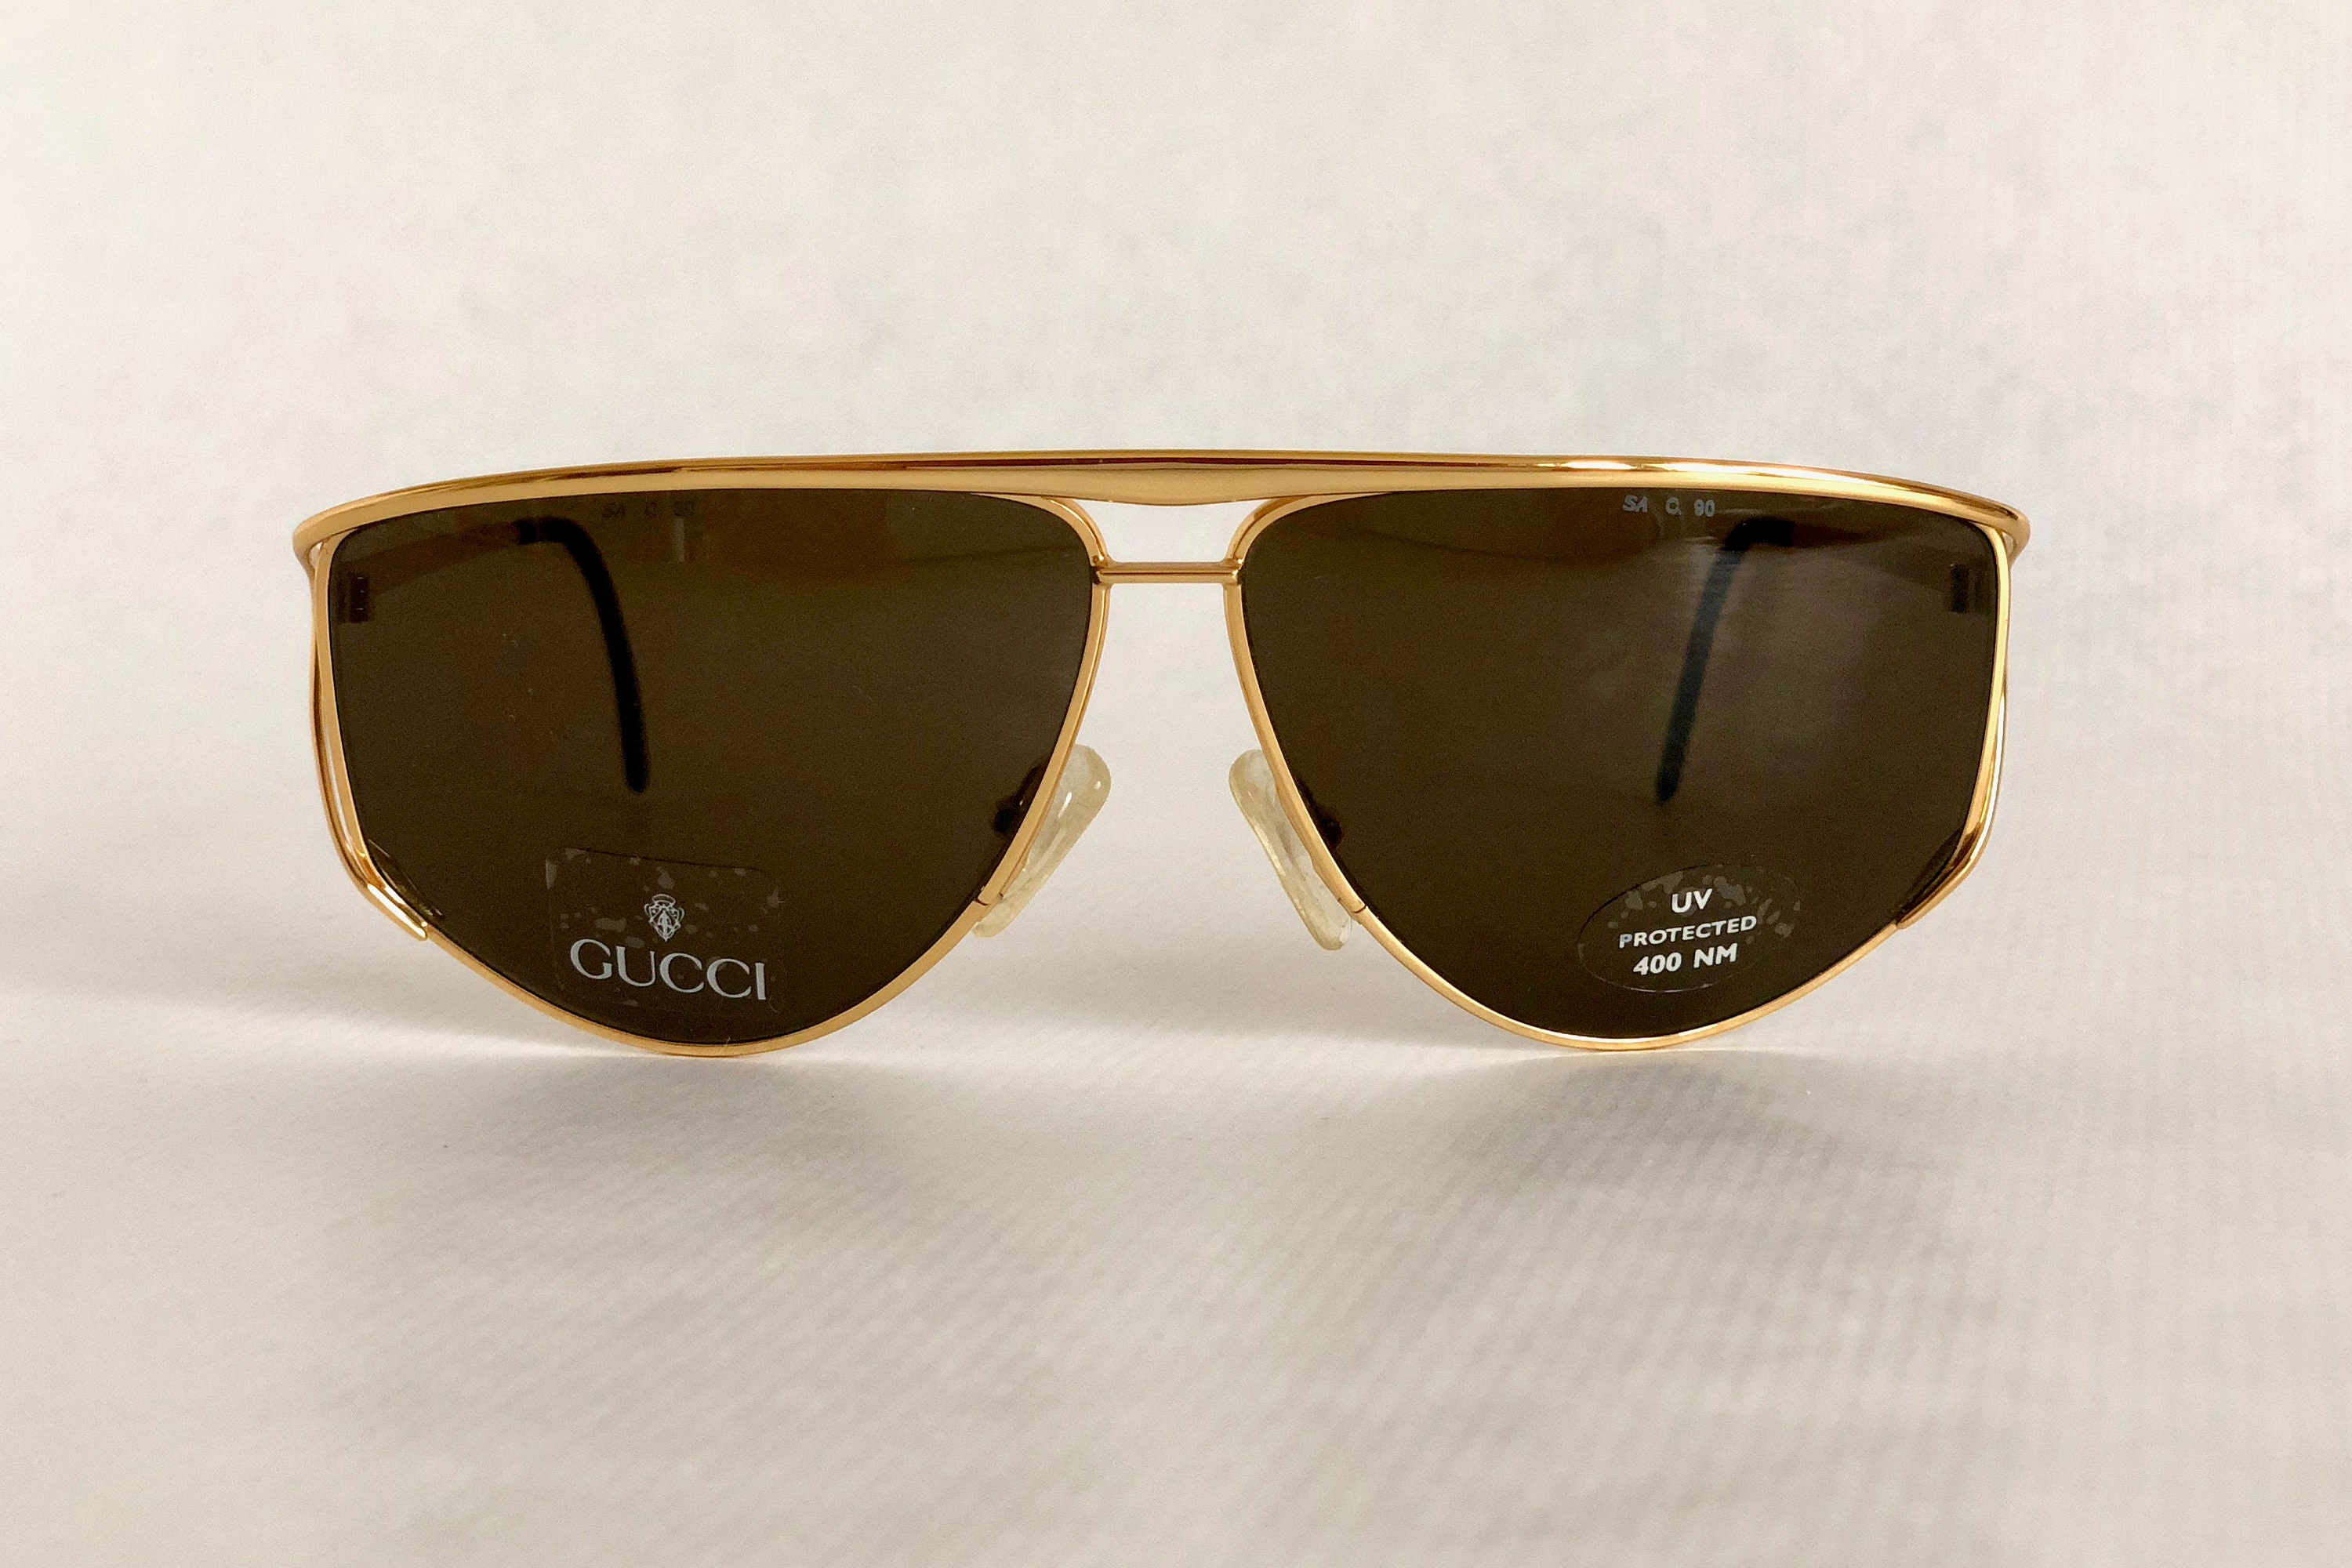 0526d5b938 GUCCI GG 2233 S Vintage Sunglasses New Old Stock including Case. gallery  photo ...